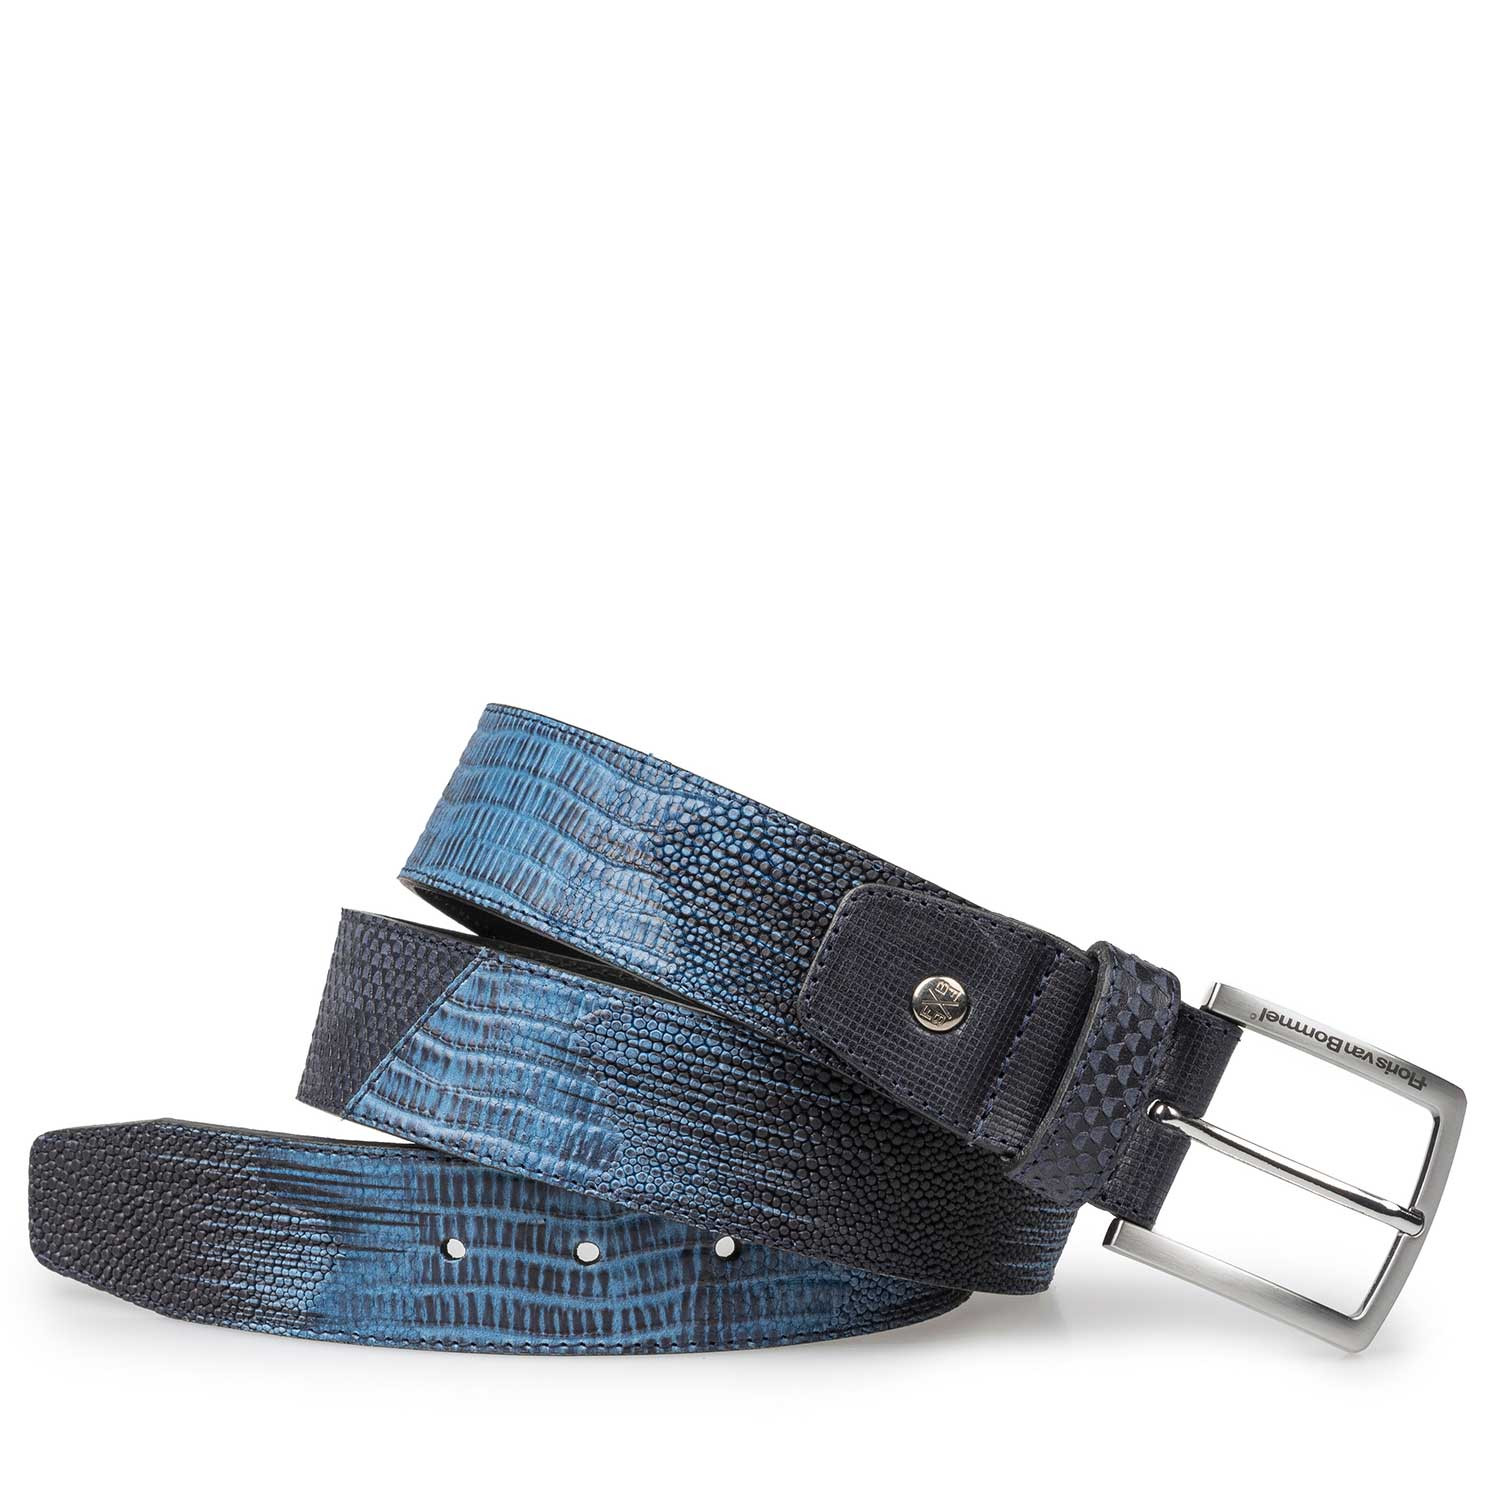 75161/11 - Blue leather belt with structural pattern